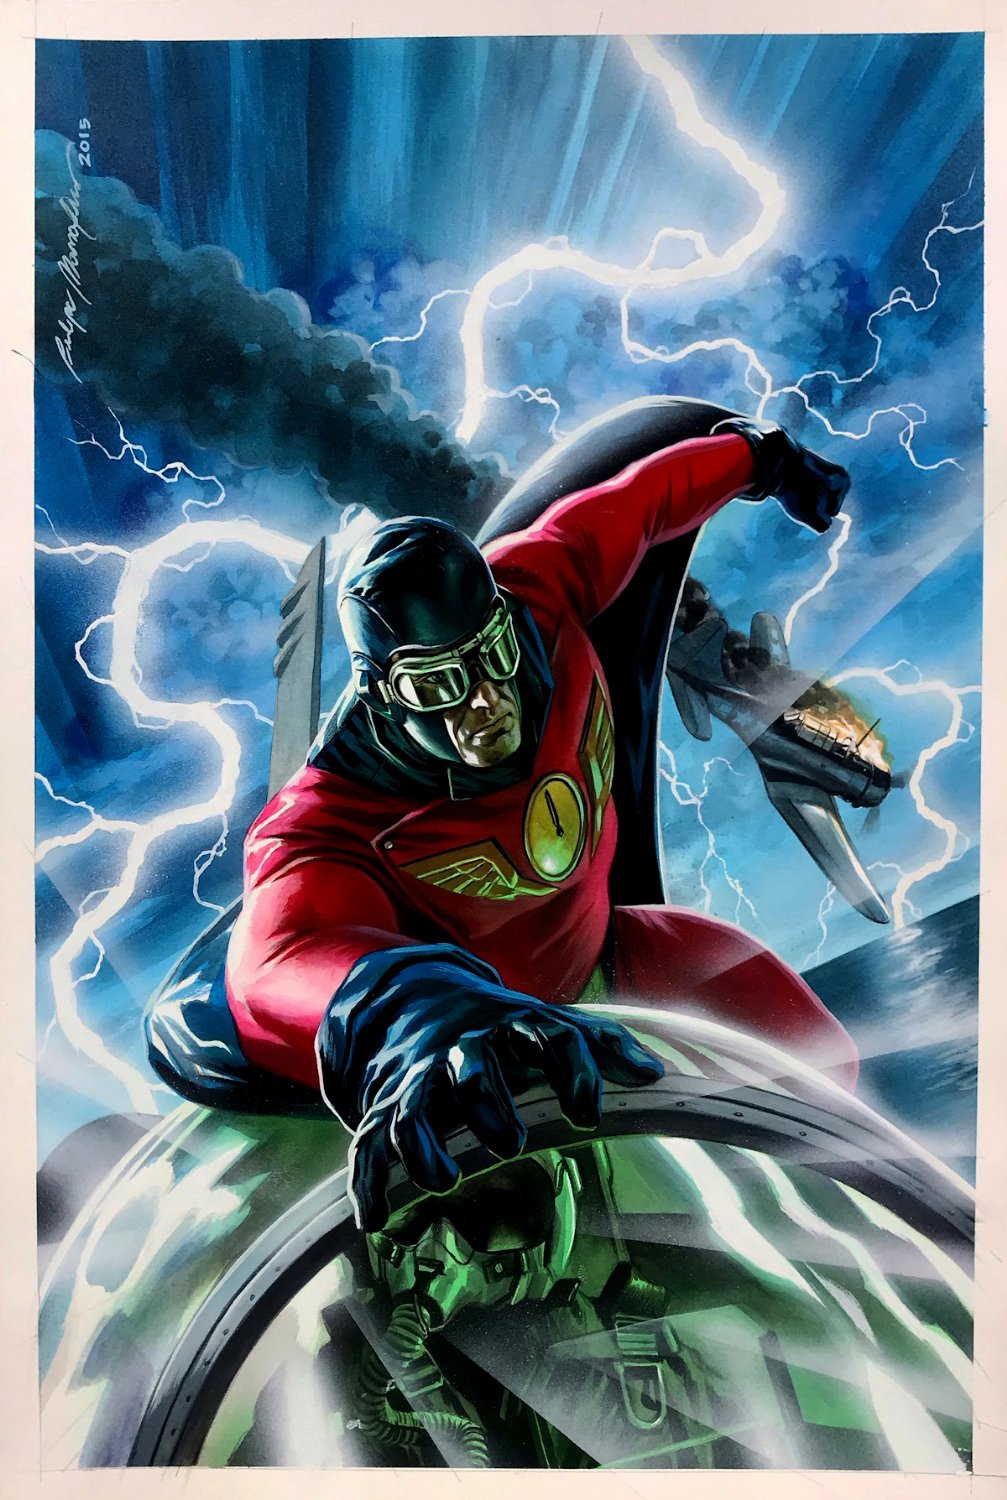 Captain Midnight #1 Cover Painting (STUNNING DETAILED GOLDEN AGE SUPERHERO!) 2013